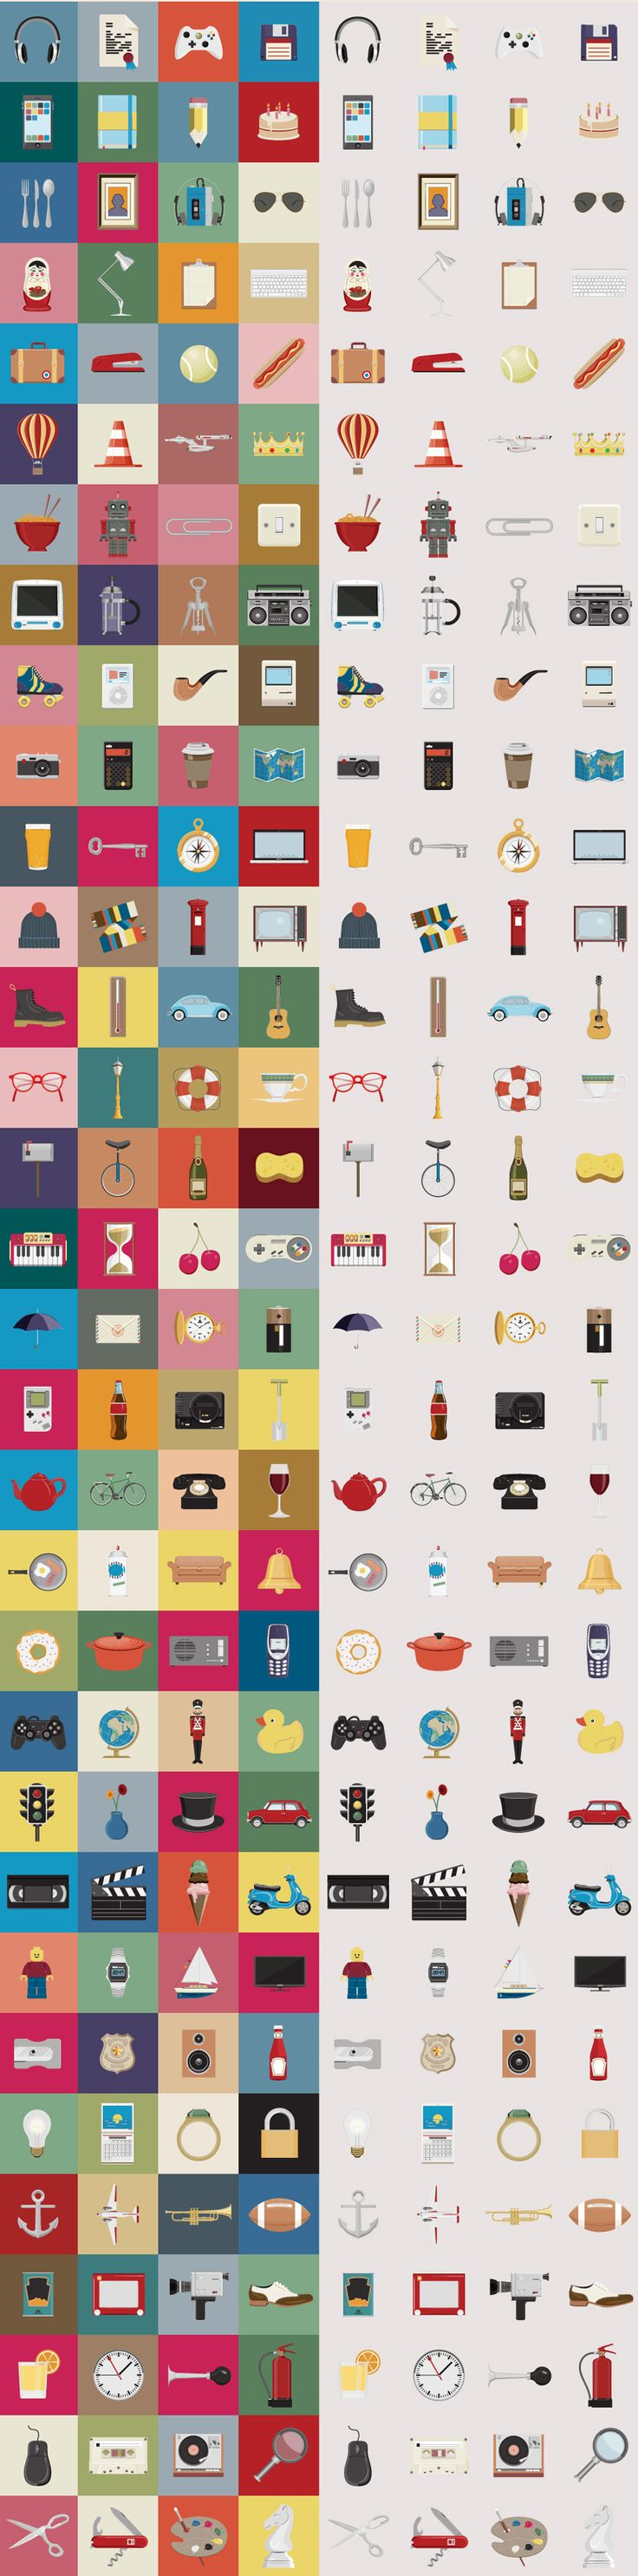 Free Icons for Web and User Interface Design # 24